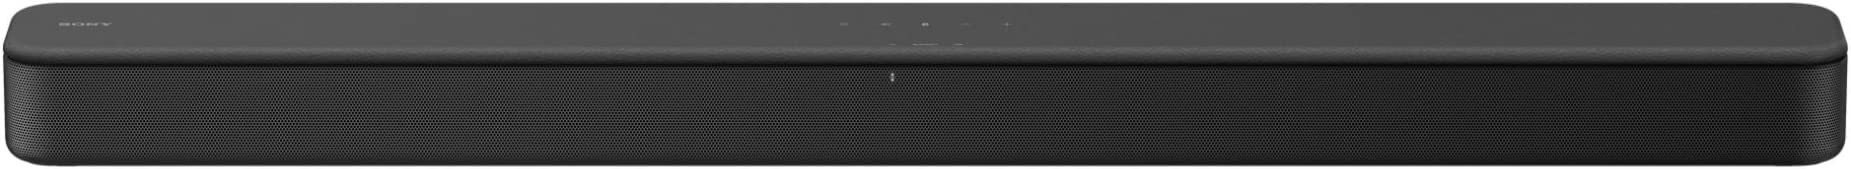 Sony HT-S100F//C AU1 Slim Soundbar, Black